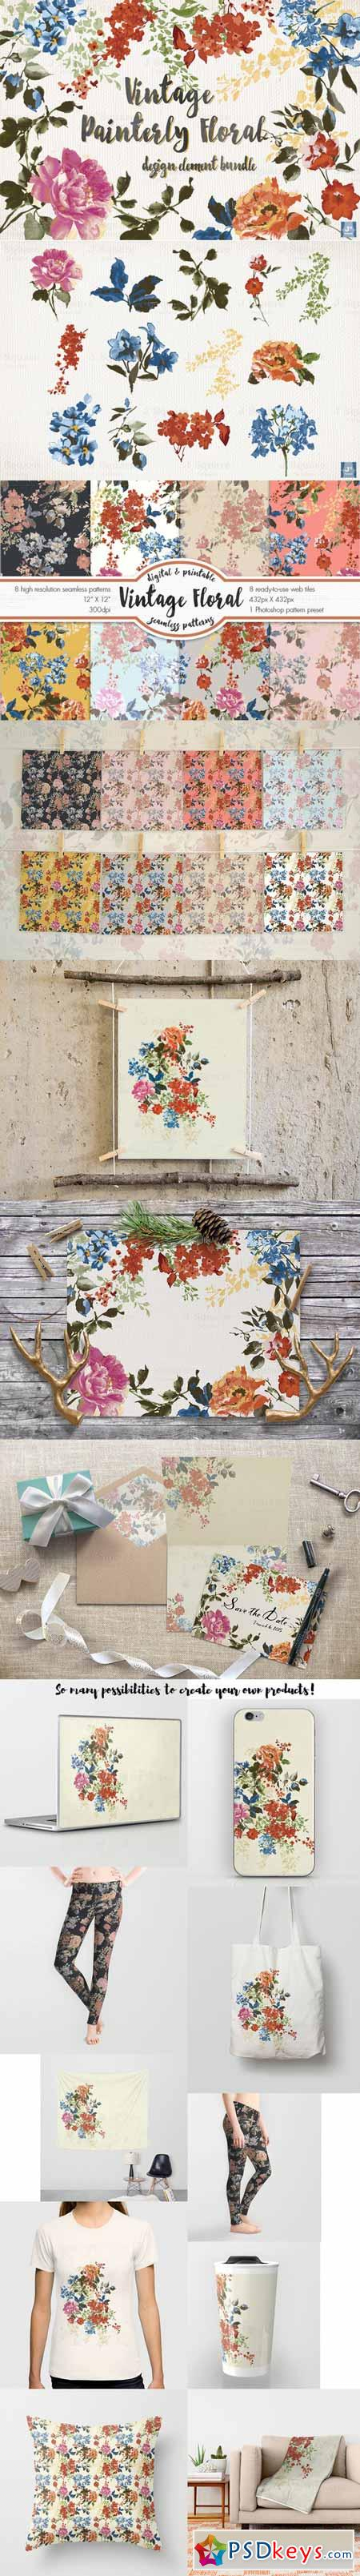 Vintage Floral Design Element Bundle 479306